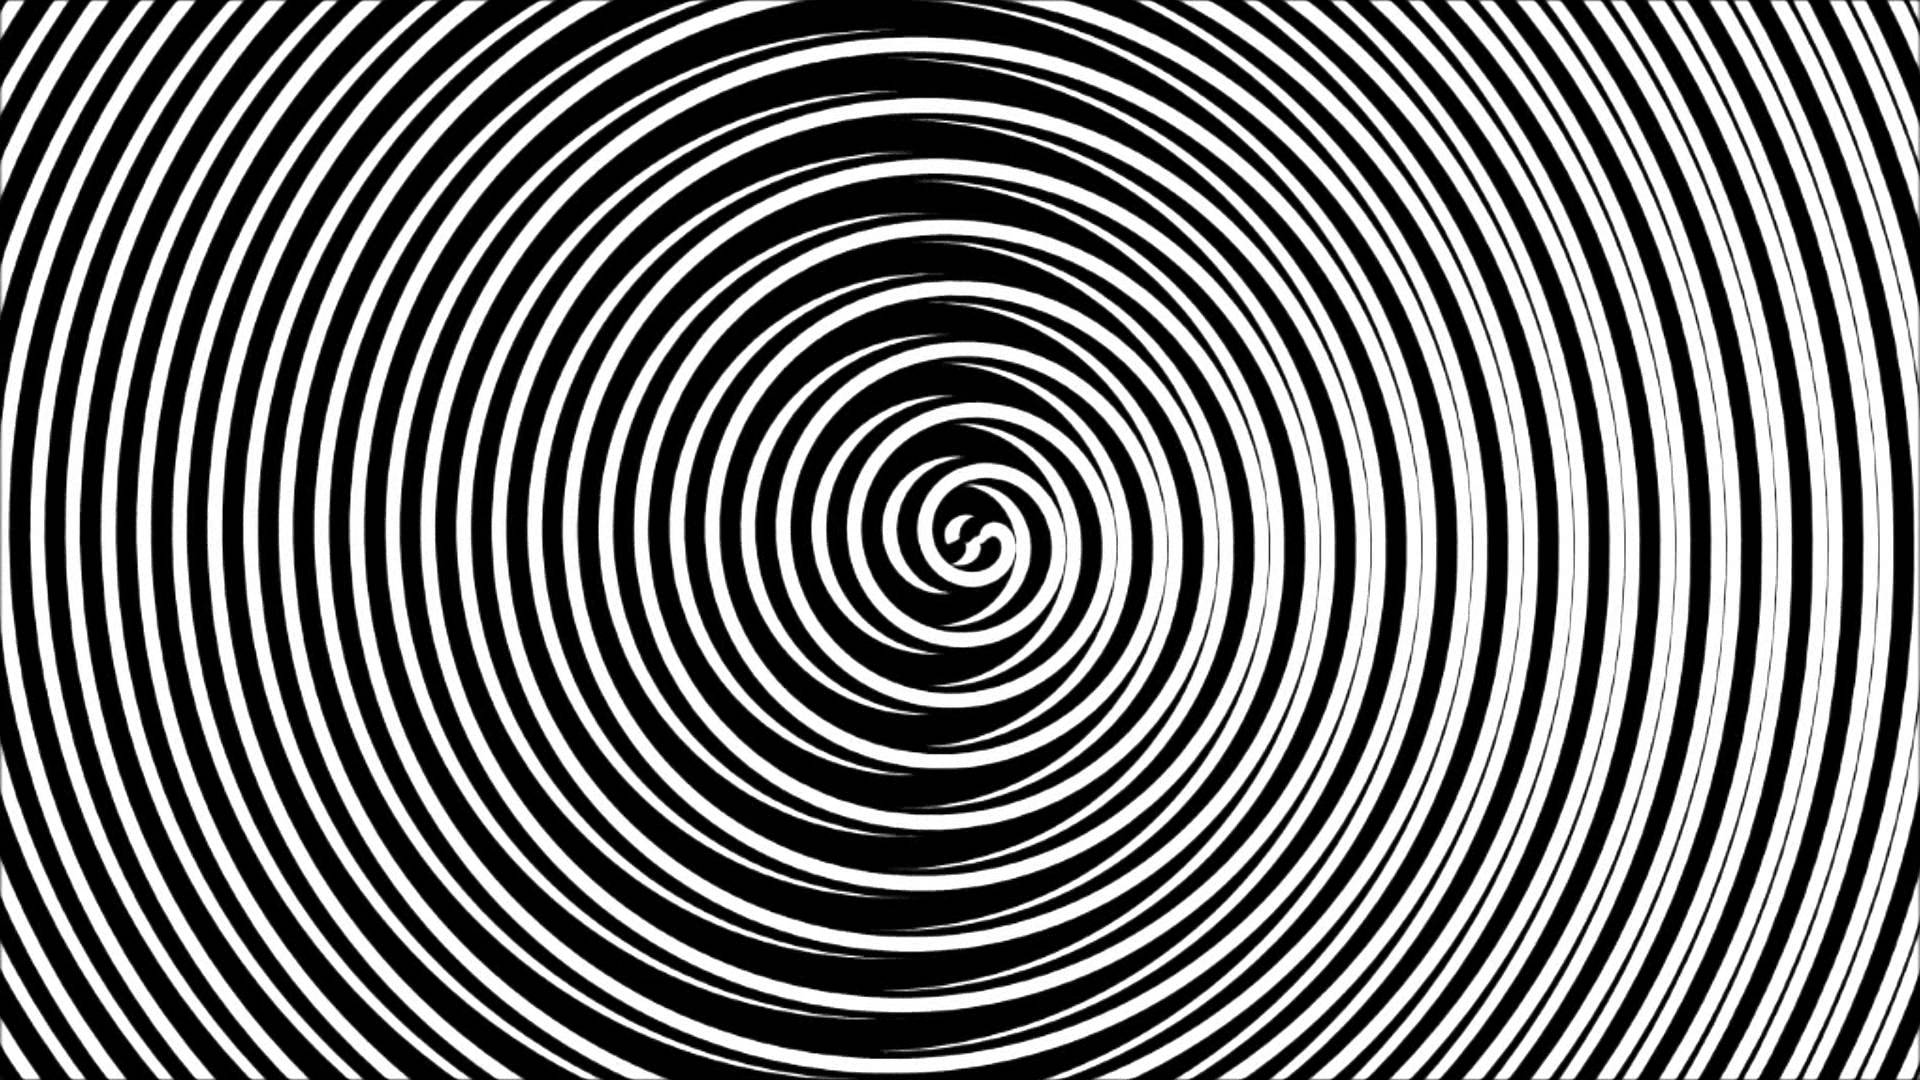 Pc Wallpaper 3d Eye Illusion Hypnosis Wallpapers High Quality Download Free